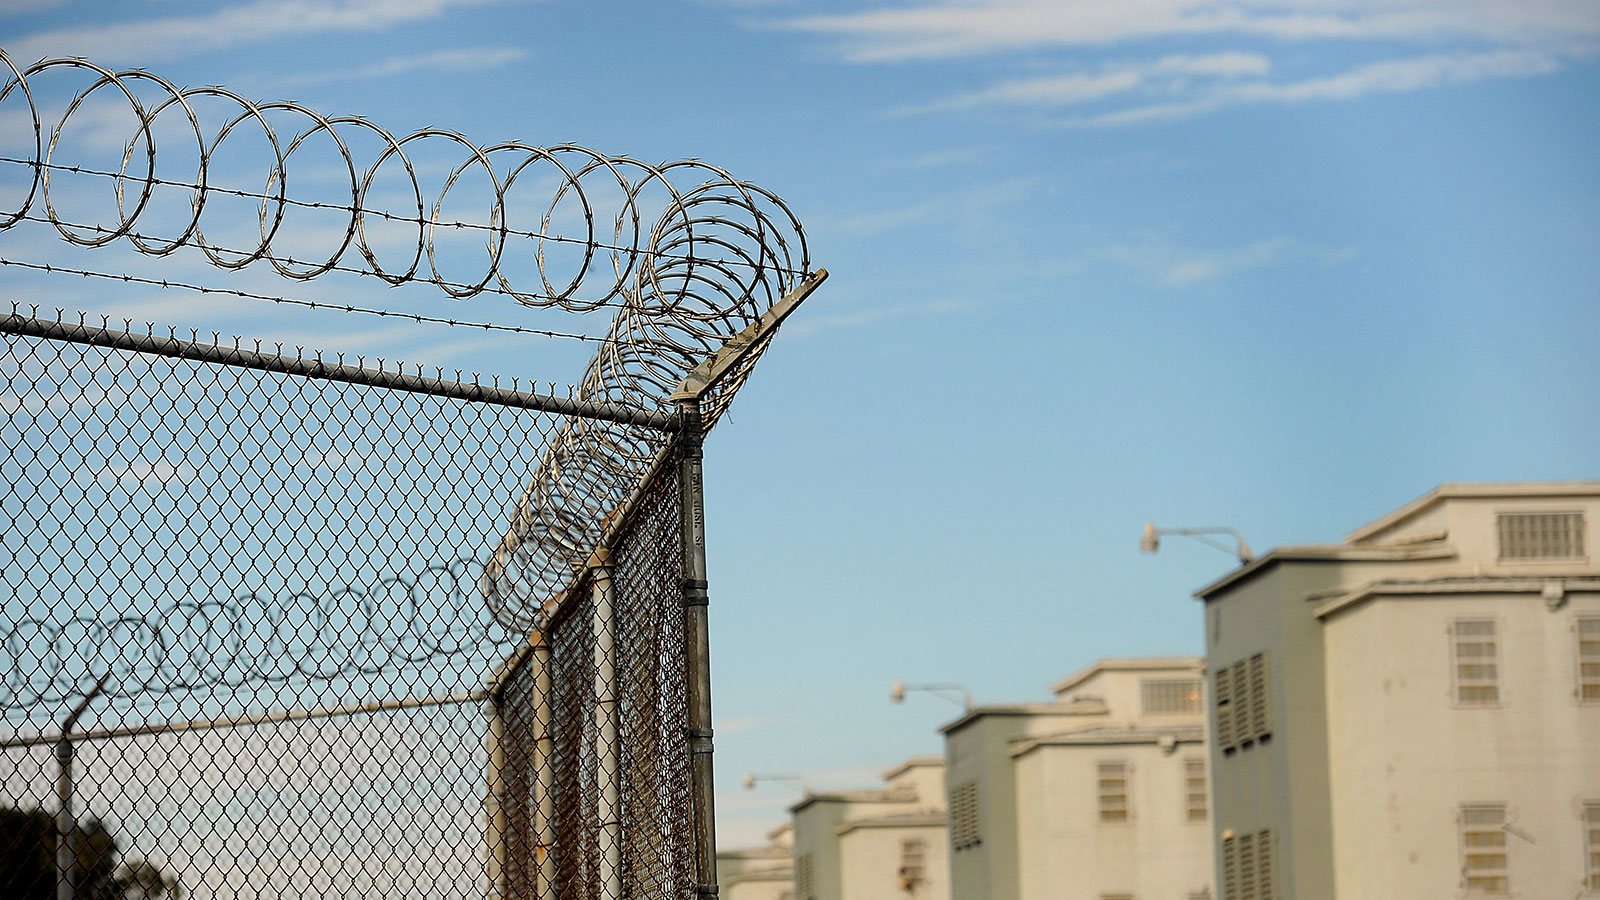 In this 2011 file photo, barbed wire marks the perimeter of a California Department of Corrections and Rehabilitation facility in Tracy, California.